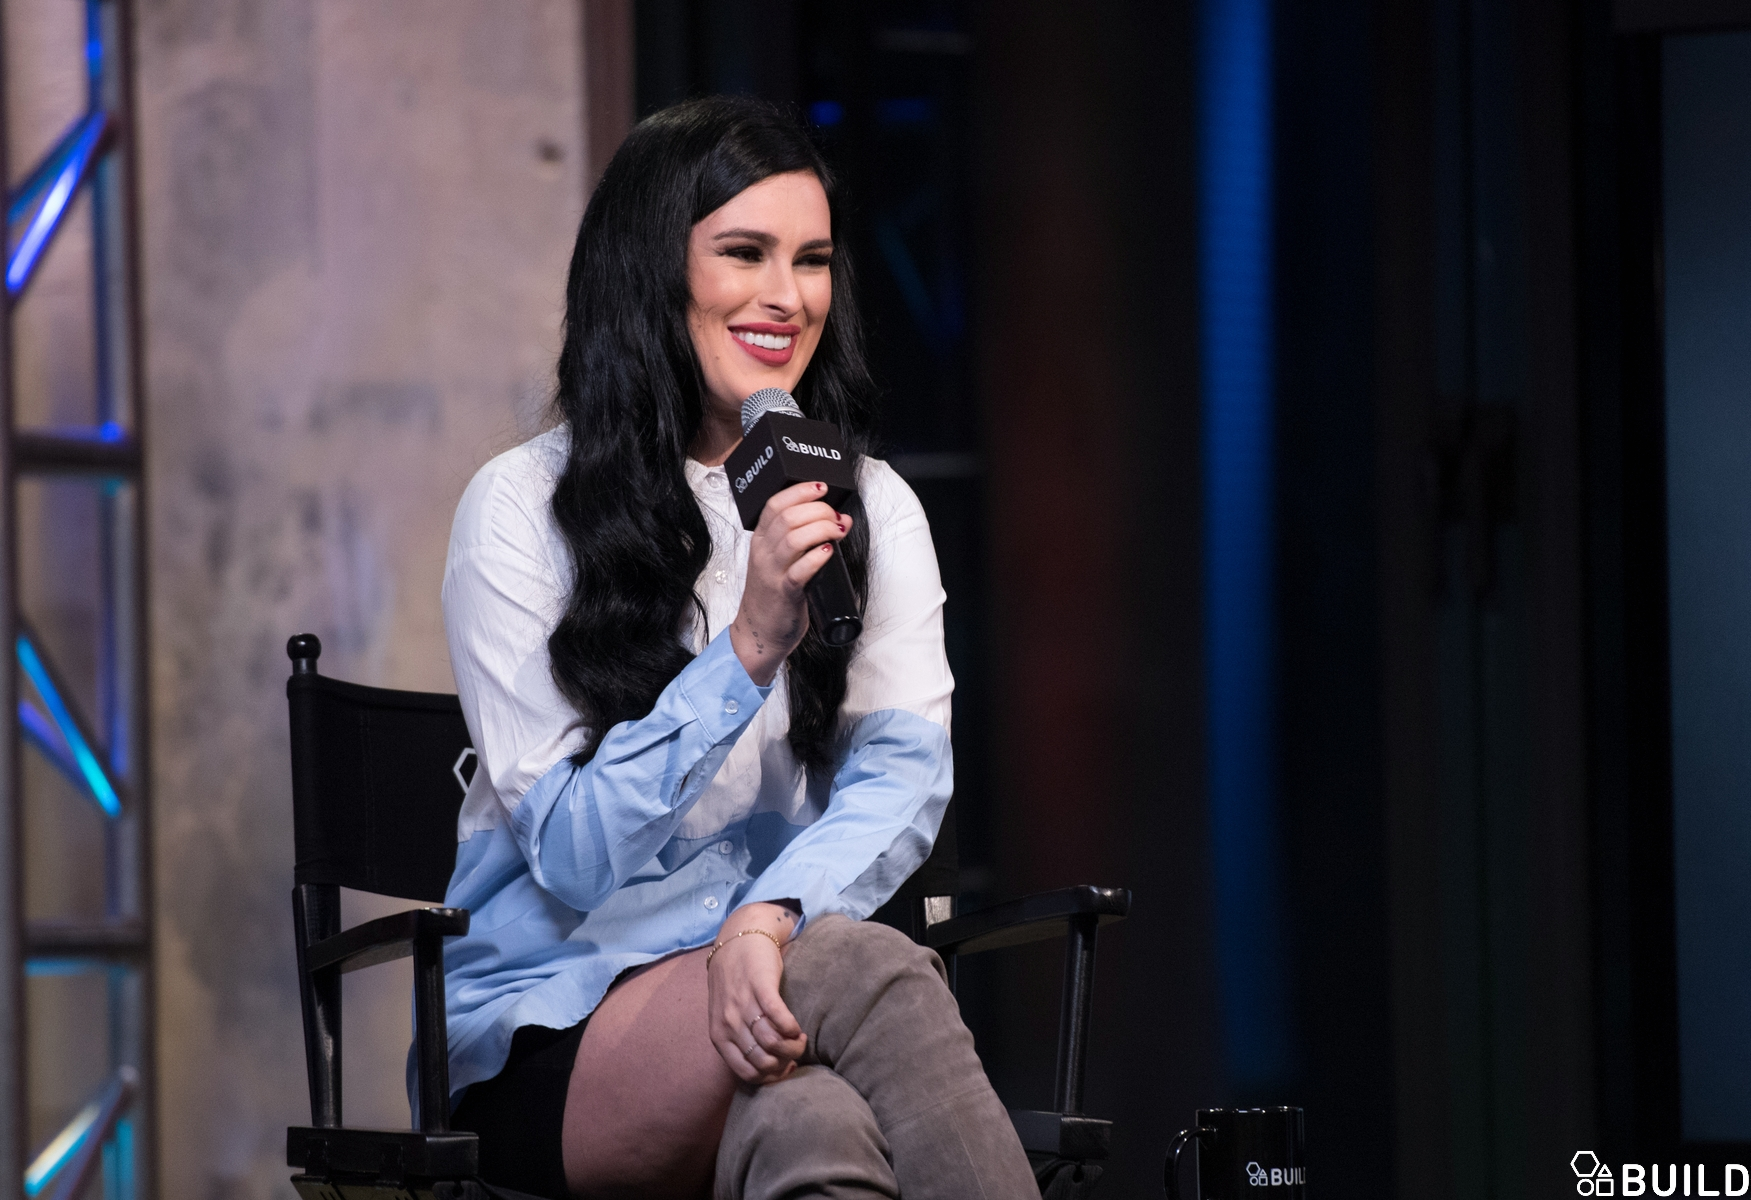 Rumer Willis visits AOL Hq for Build on October 20, 2016 in New York. Photos by Noam Galai